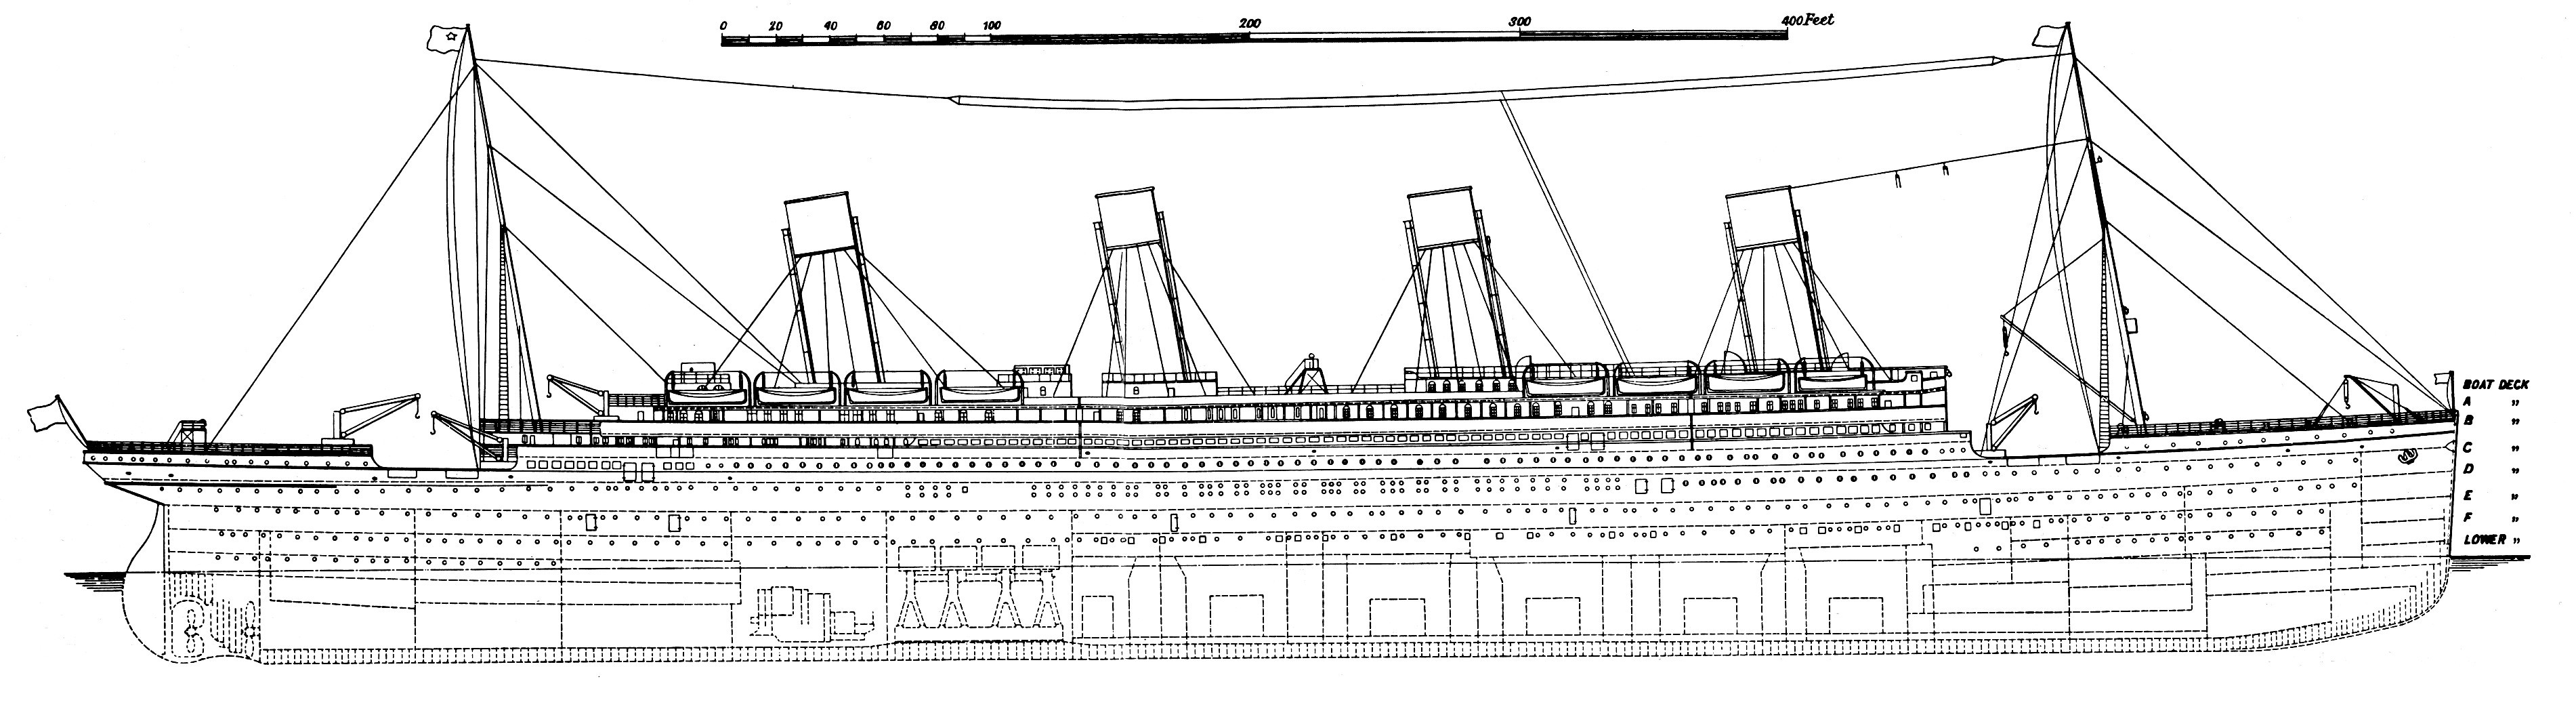 easy titanic coloring pages easy titanic coloring pages titanic pages easy coloring